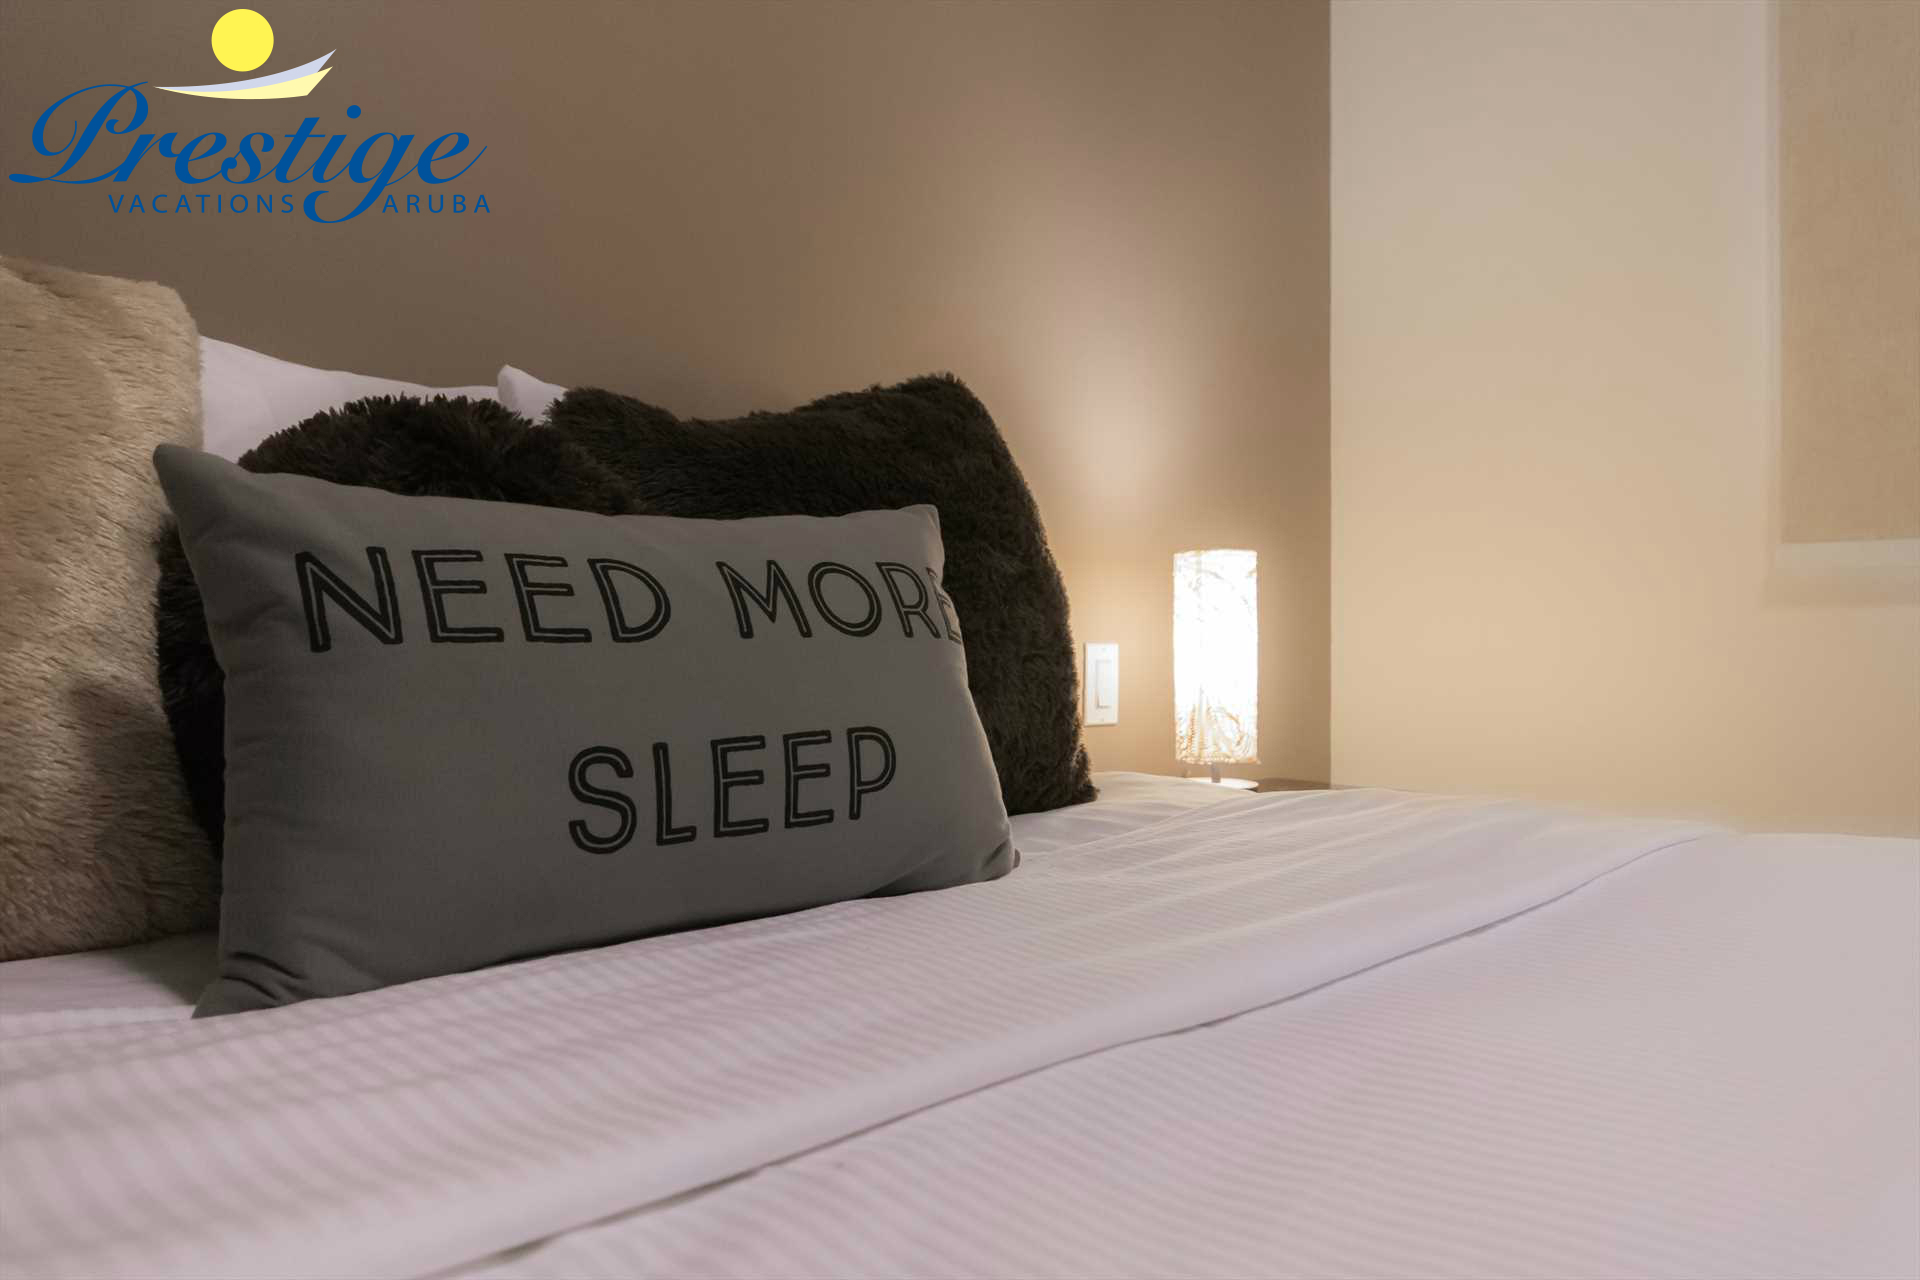 The Divi Palm provides you with everything you need for a good night's sleep